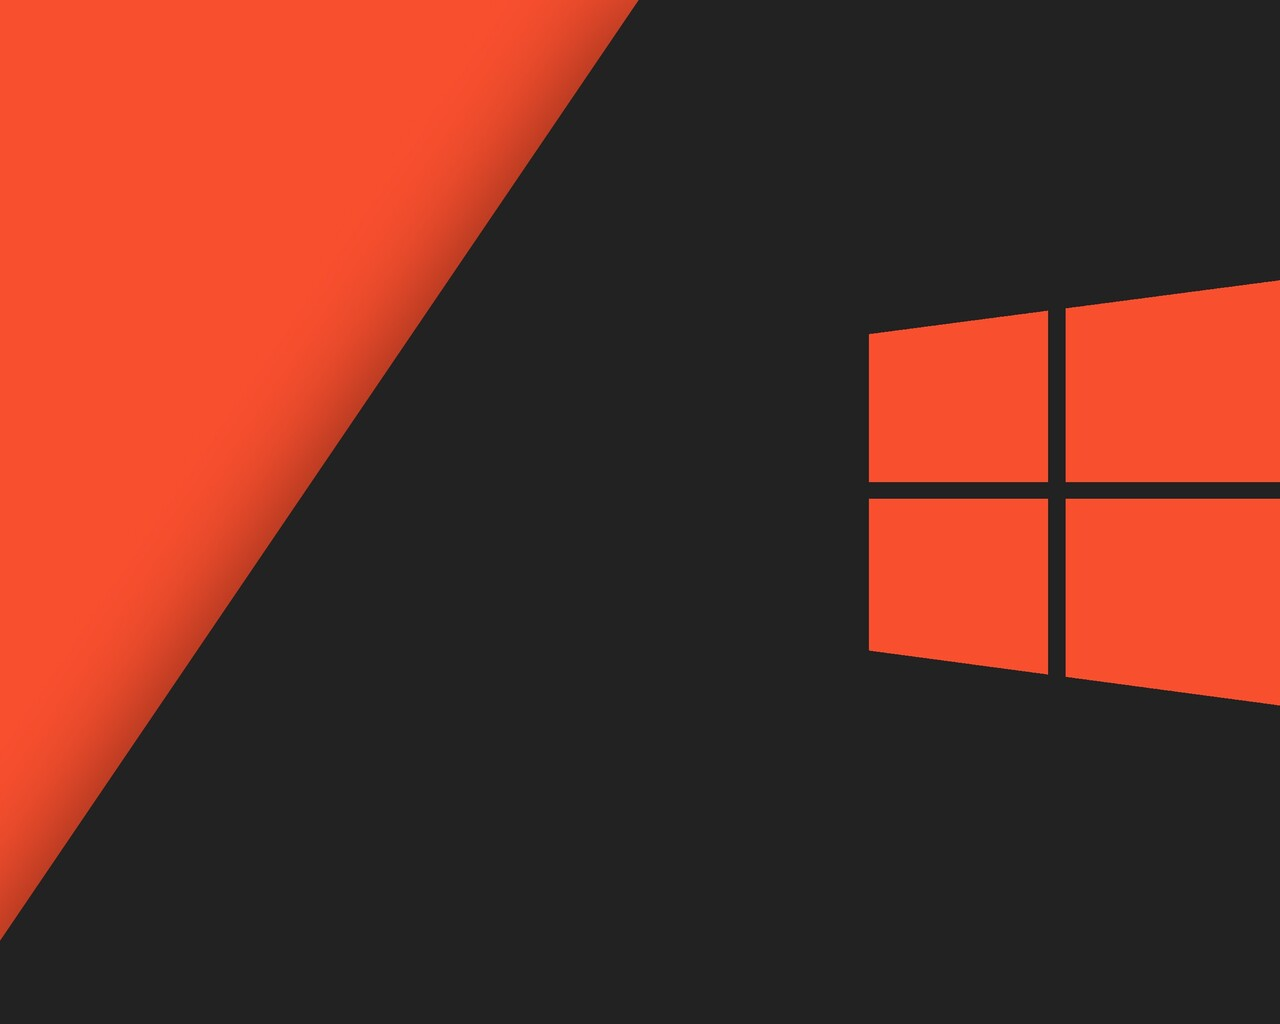 1280x1024 Windows 10 Orange Stock 1280x1024 Resolution HD